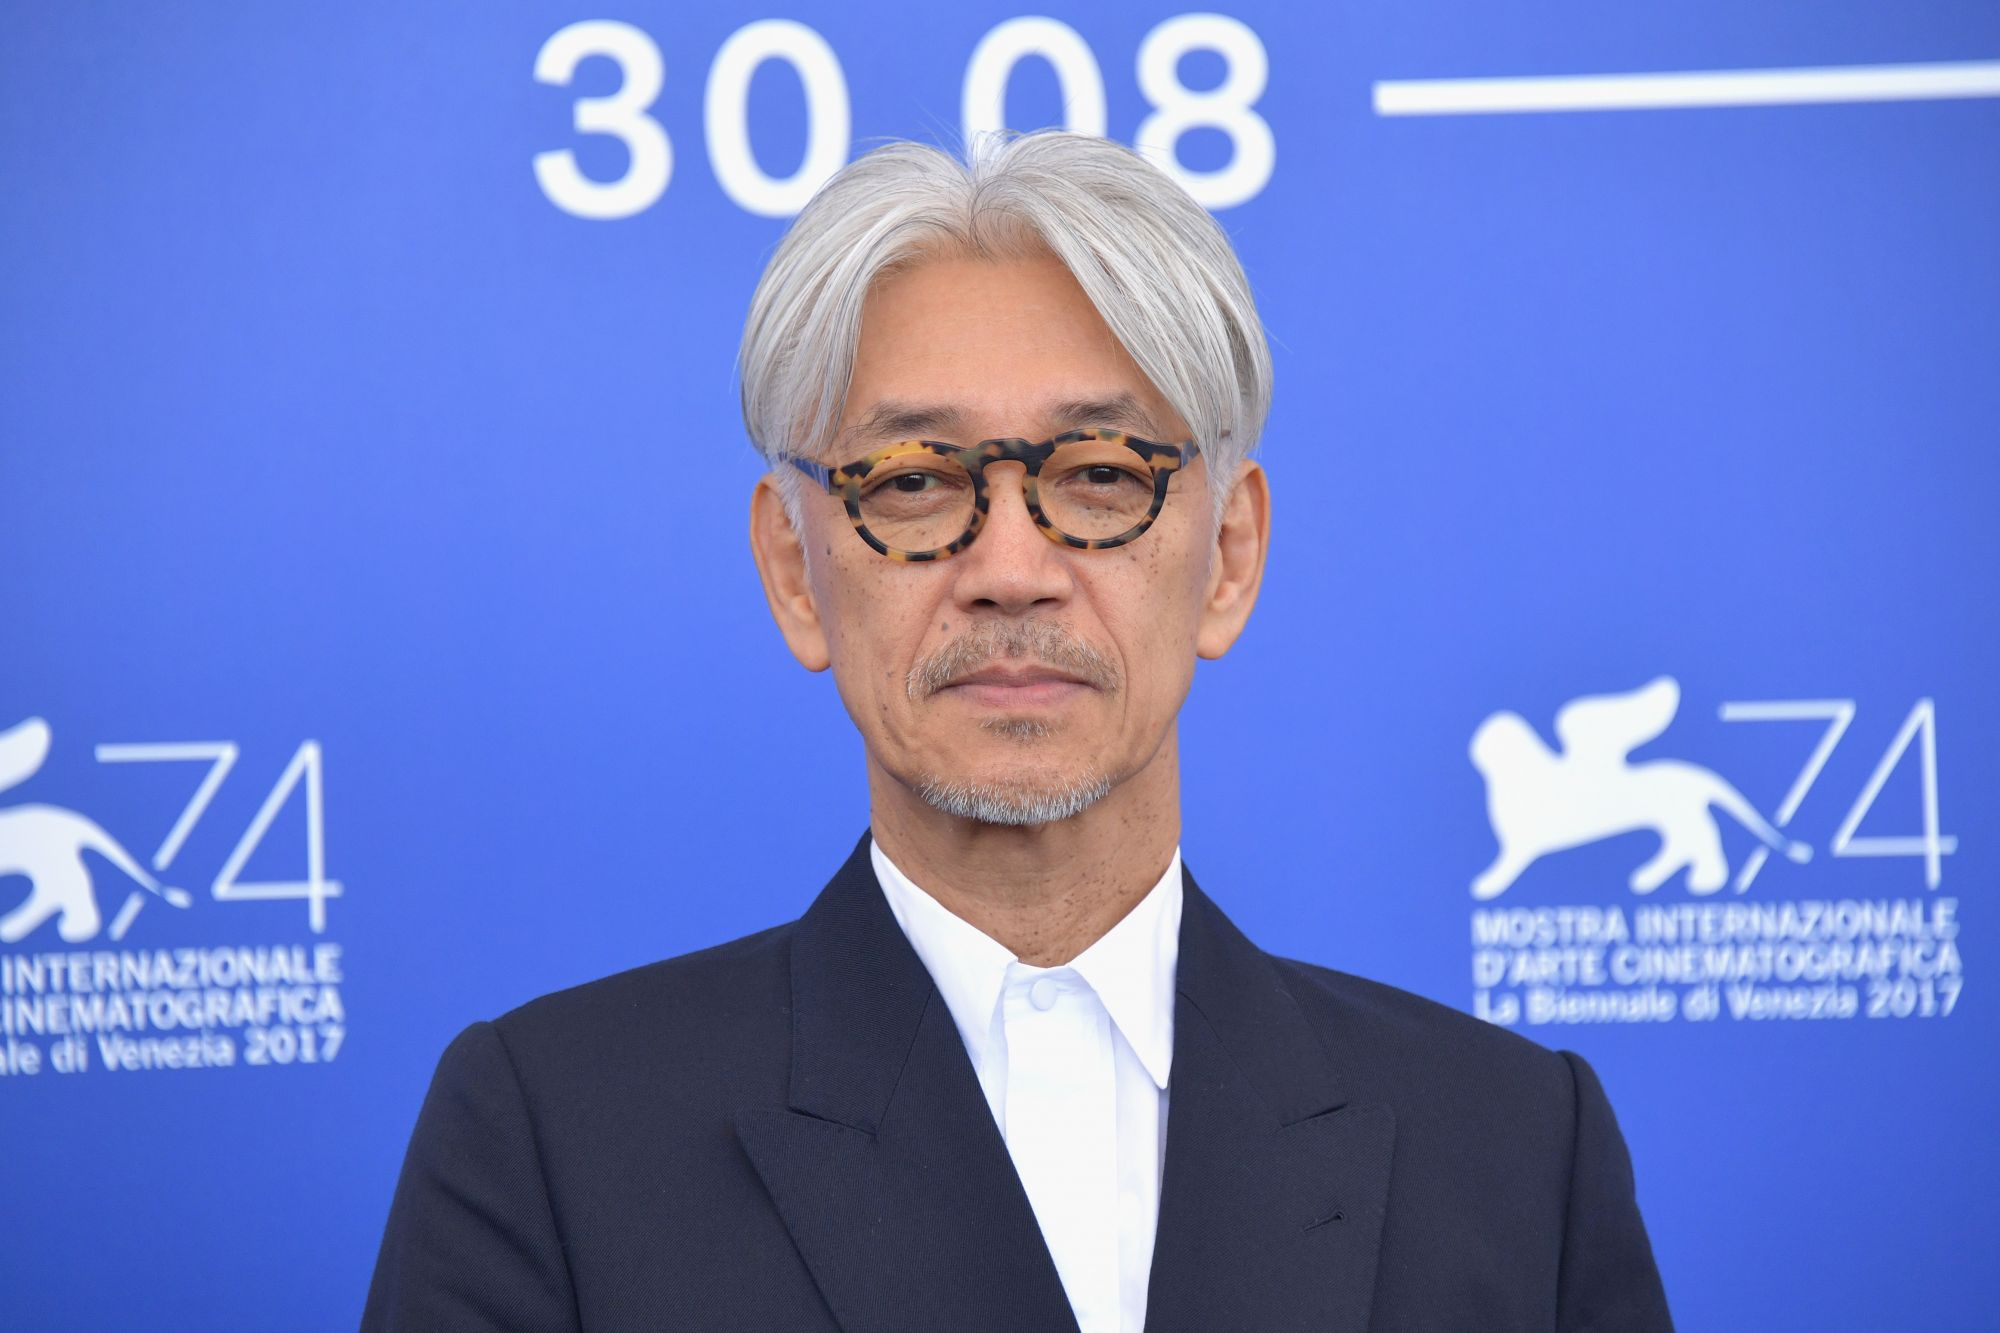 VENICE, ITALY - SEPTEMBER 03:  Ryuichi Sakamoto attends the 'Ryuichi Sakamoto: Coda' photocall during the 74th Venice Film Festival at Sala Casino on September 3, 2017 in Venice, Italy.  (Photo by Dominique Charriau/WireImage)